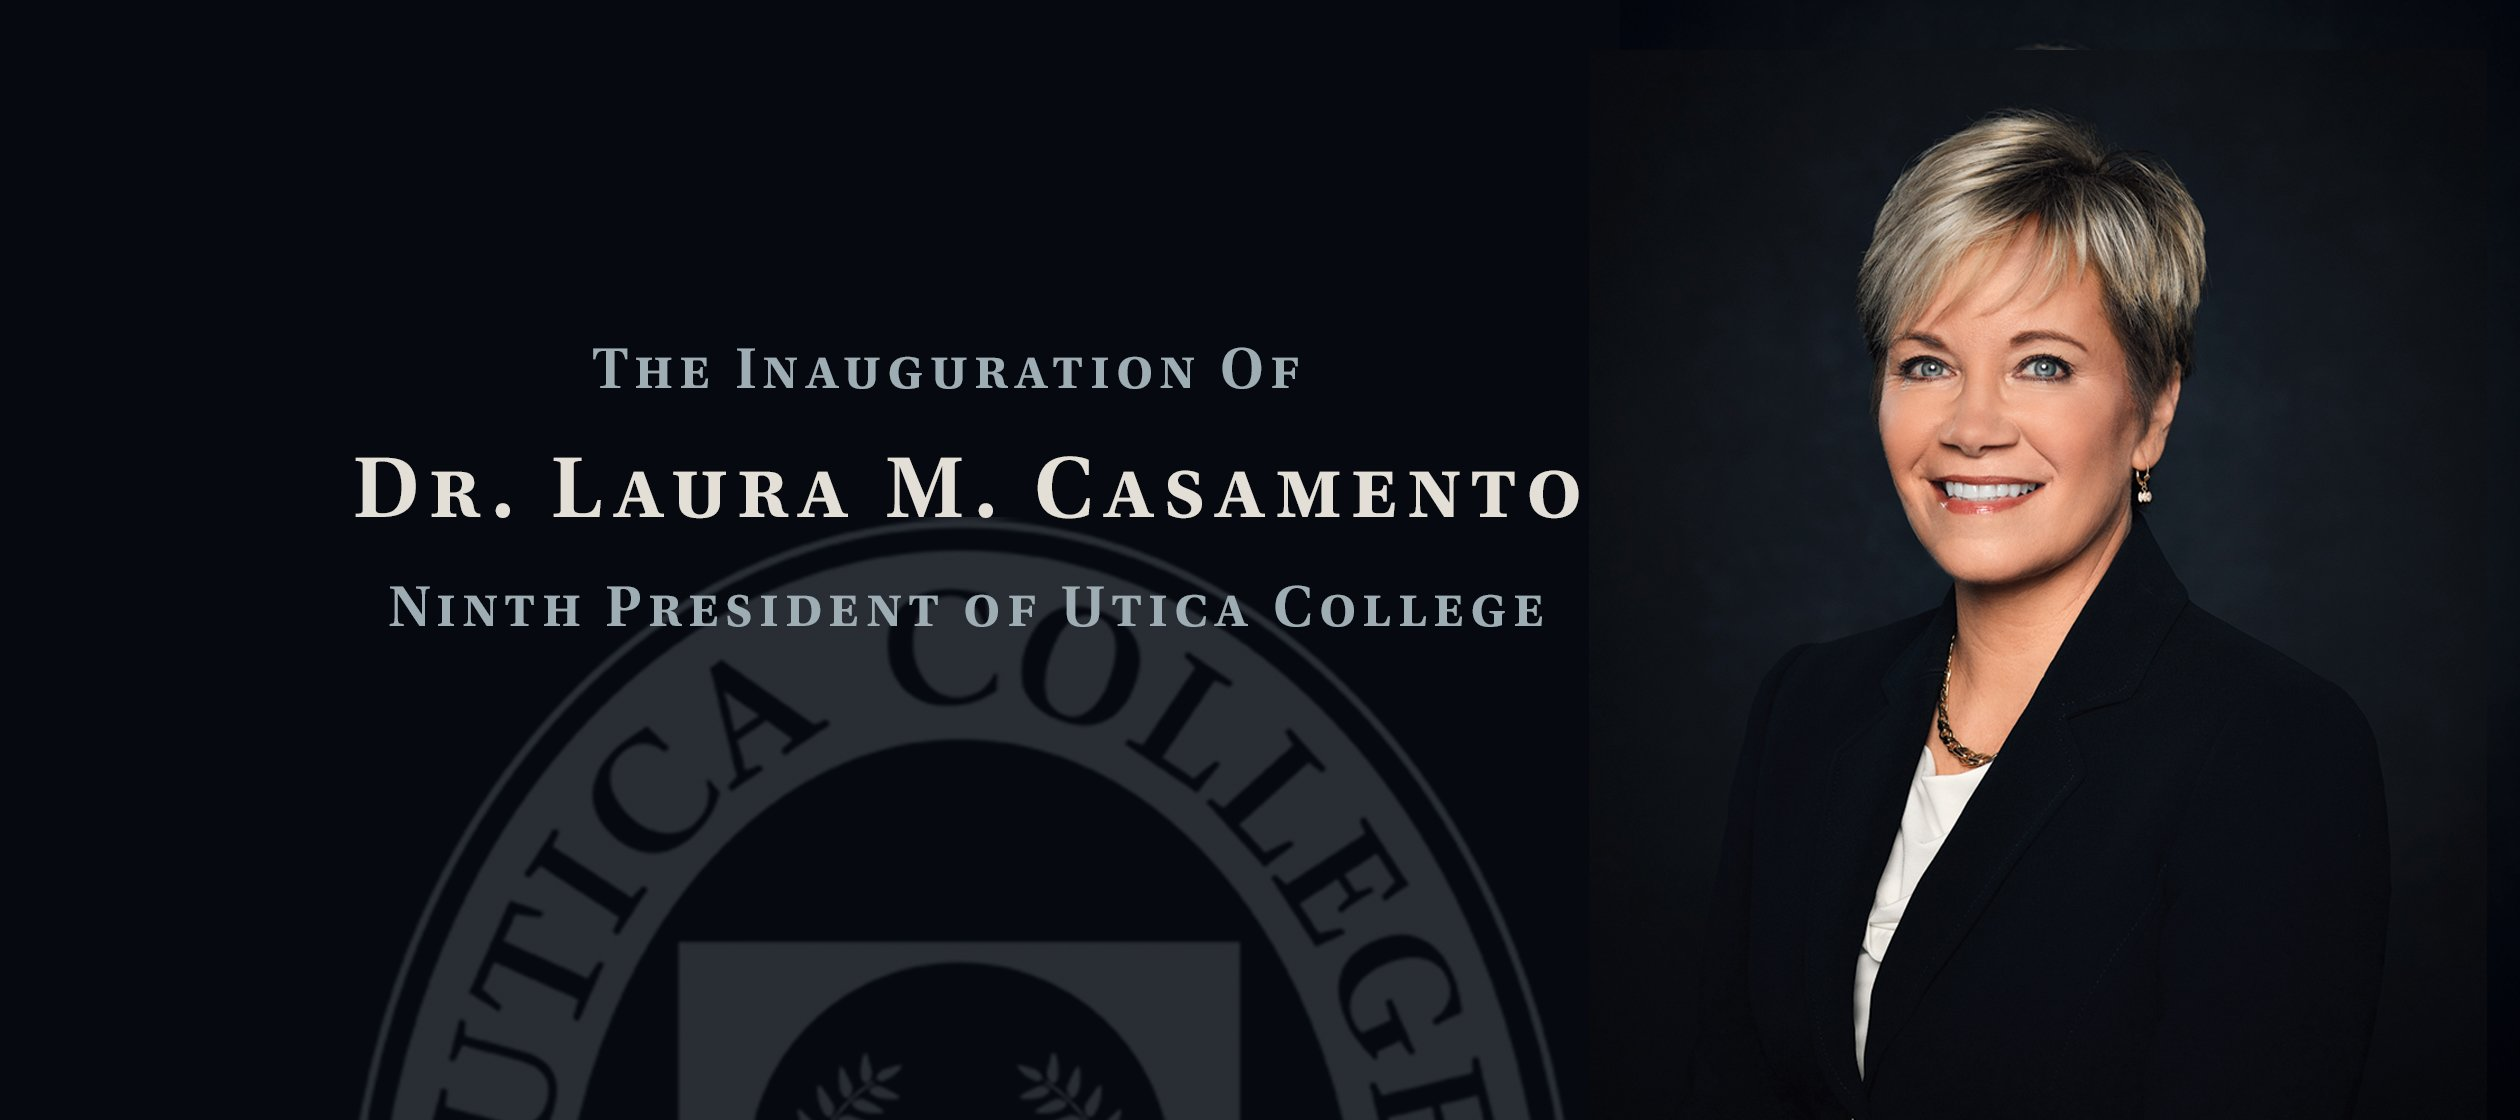 The Inauguration of President Laura M. Casamento